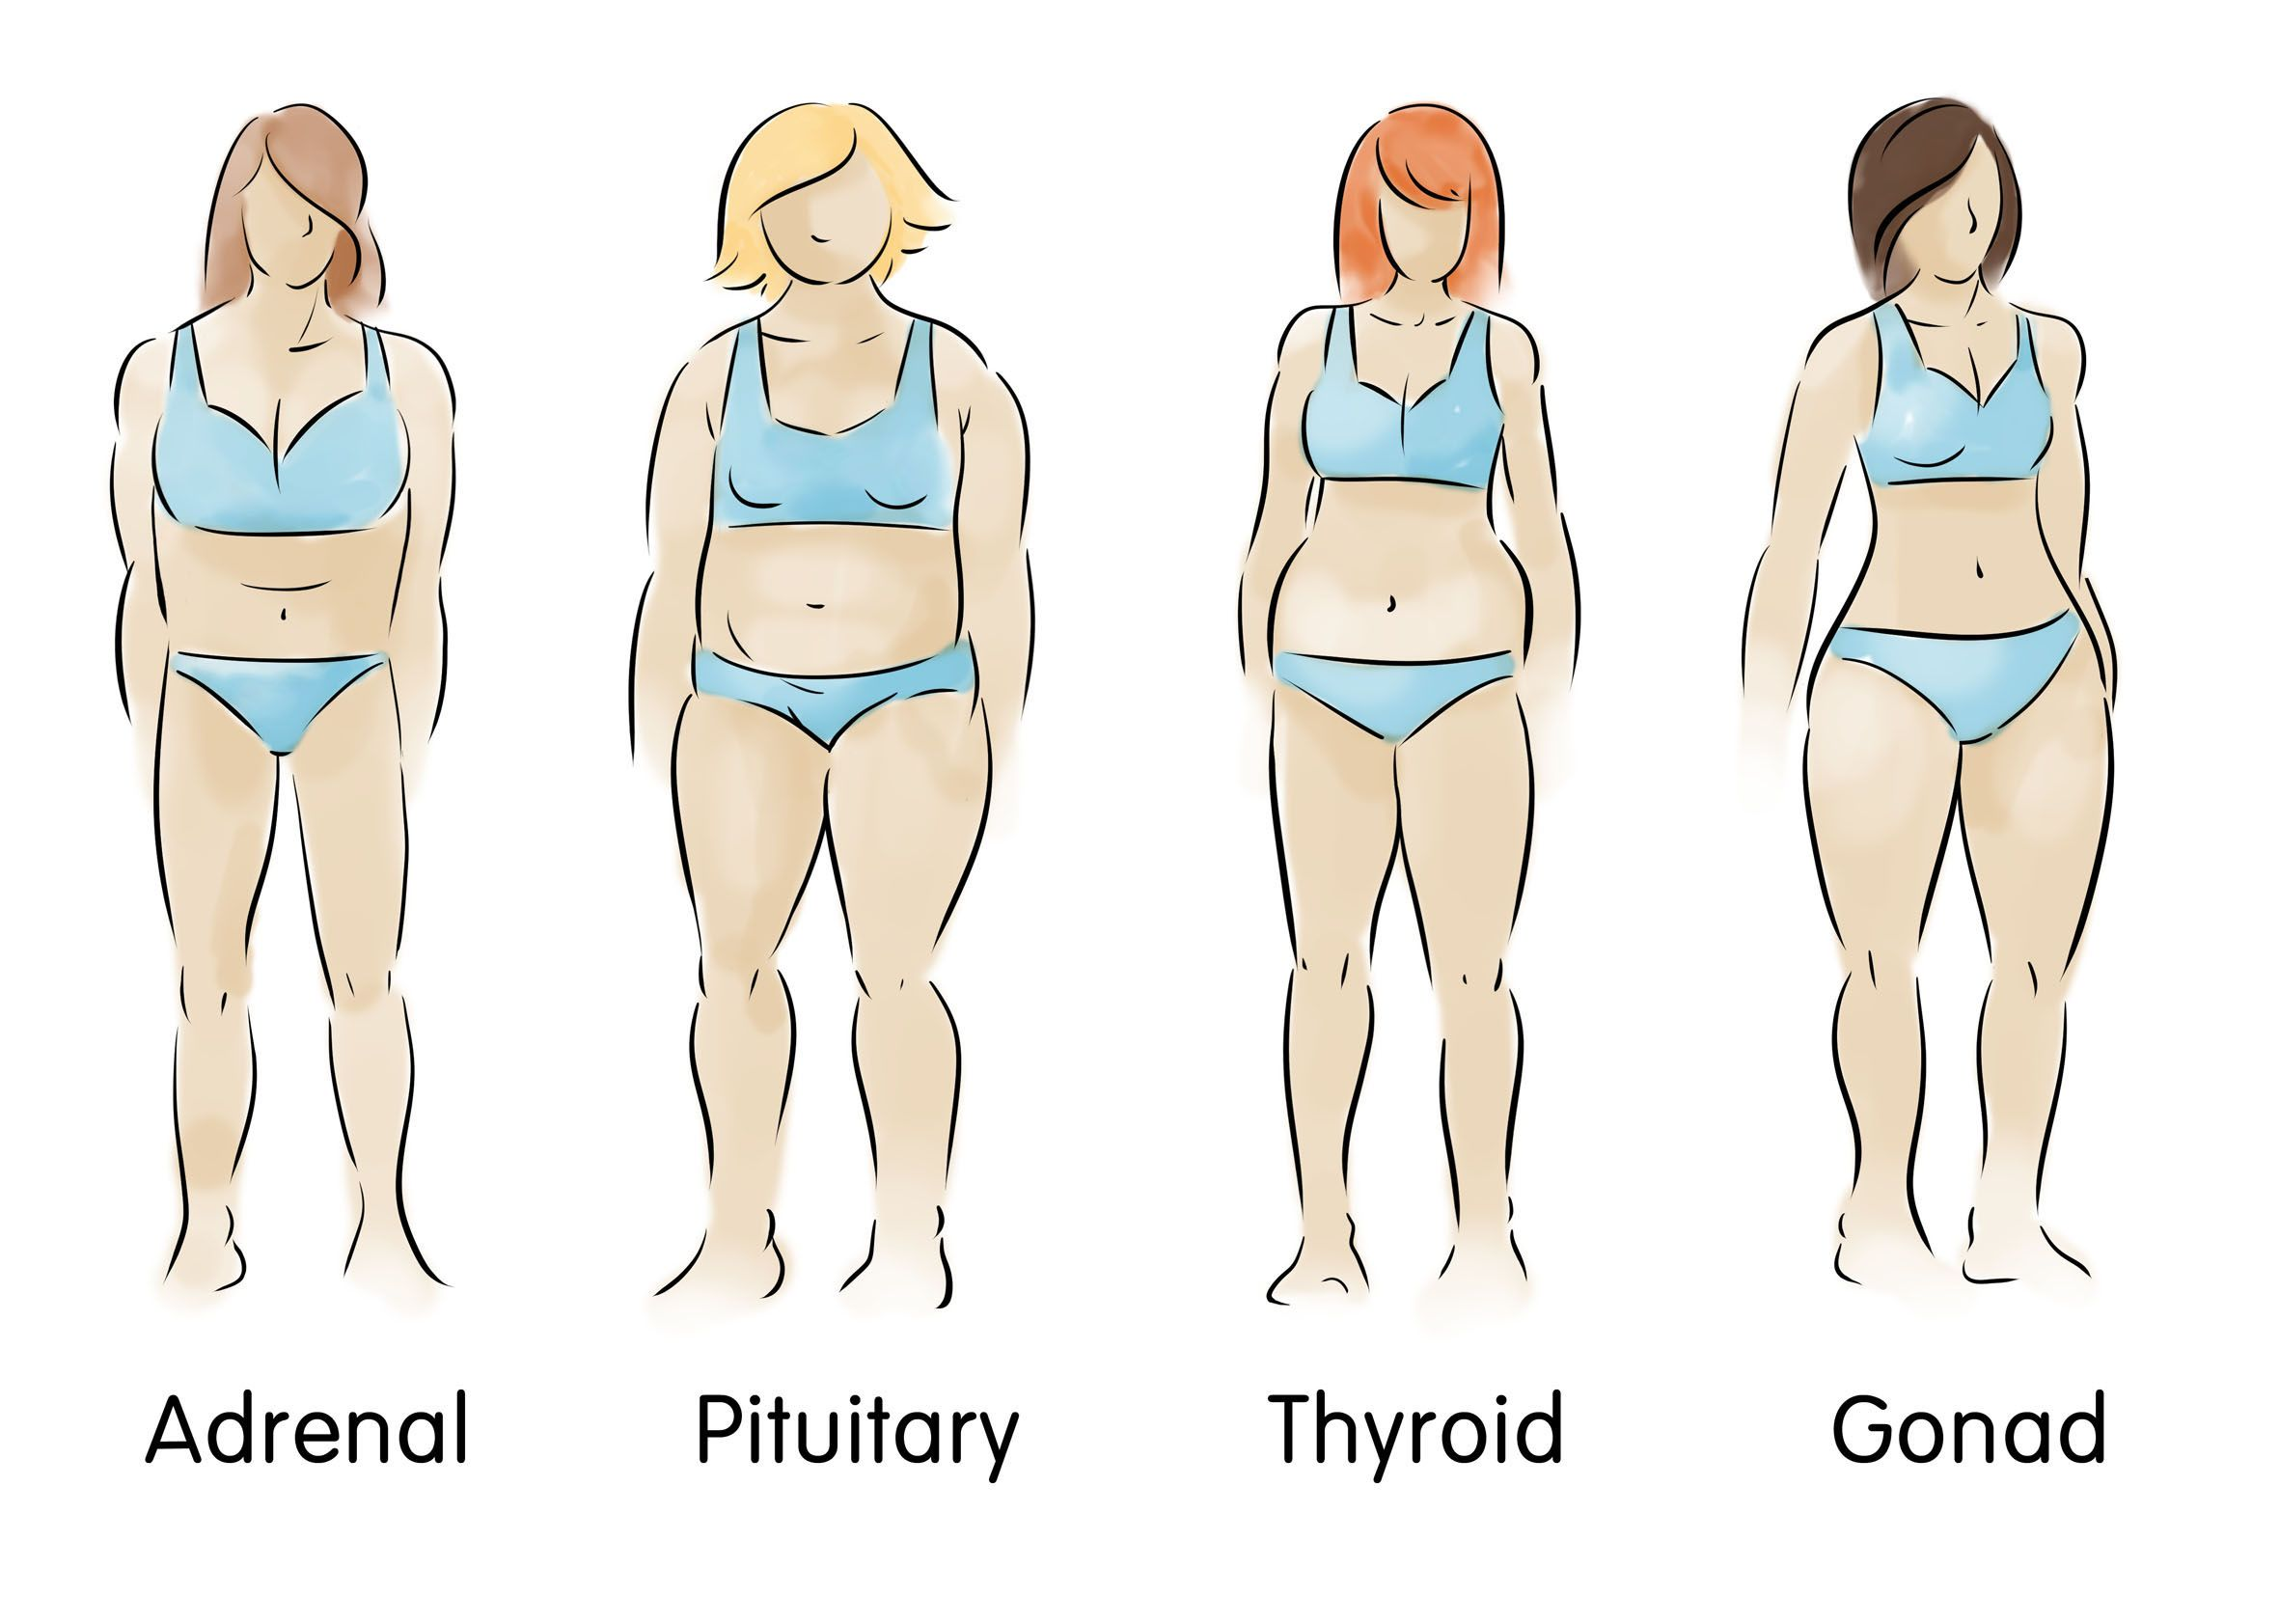 What Is My Body Type Do You Have A Pear Body Type An Adrenal Body Type Or An Endomorph Body